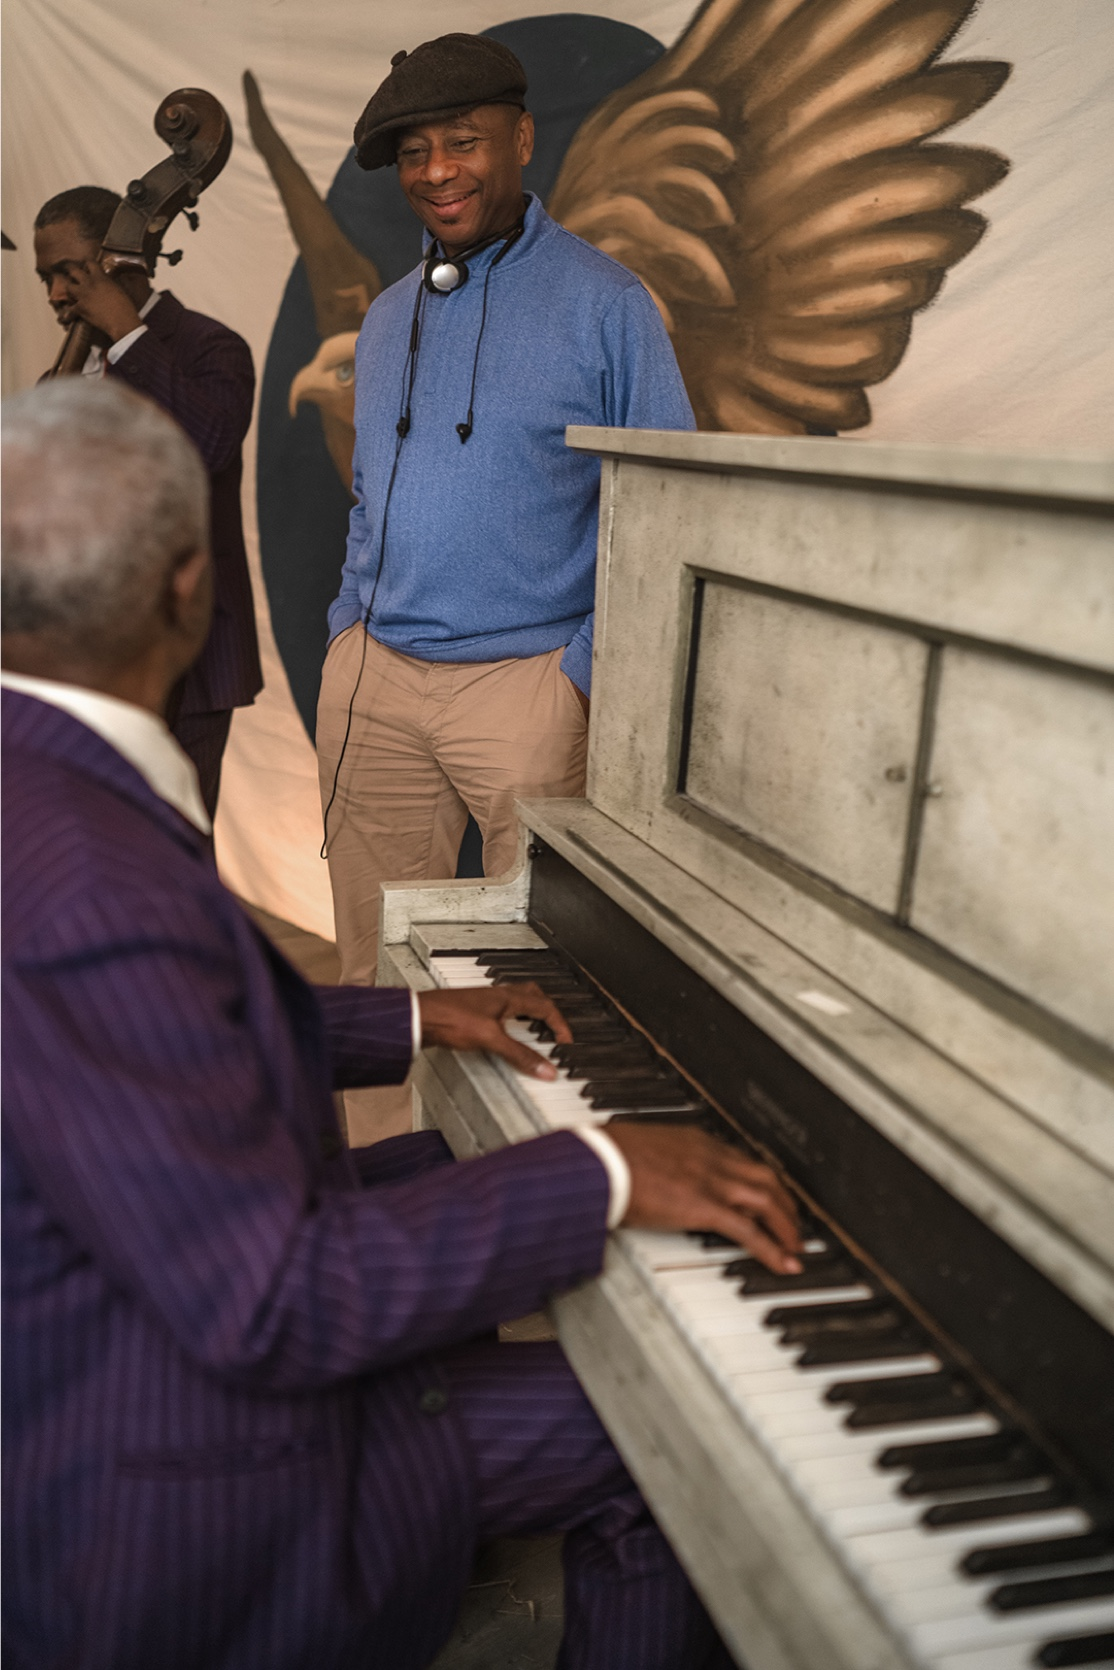 Branford Marsalis hobnobs with Ma Rainey's band. Just another day for a jazz legend.